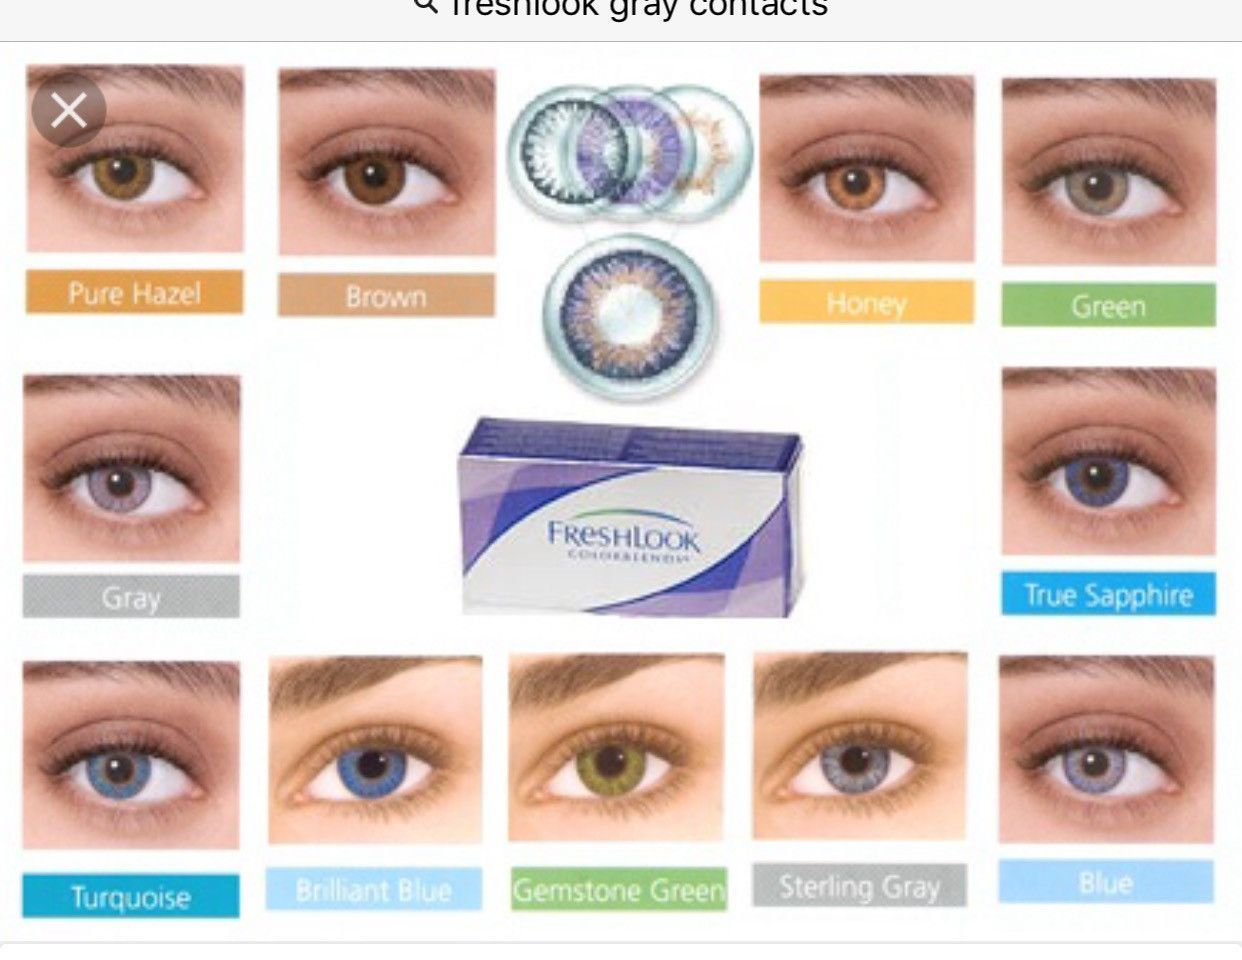 Color contacts prescription colored contacts color contacts and